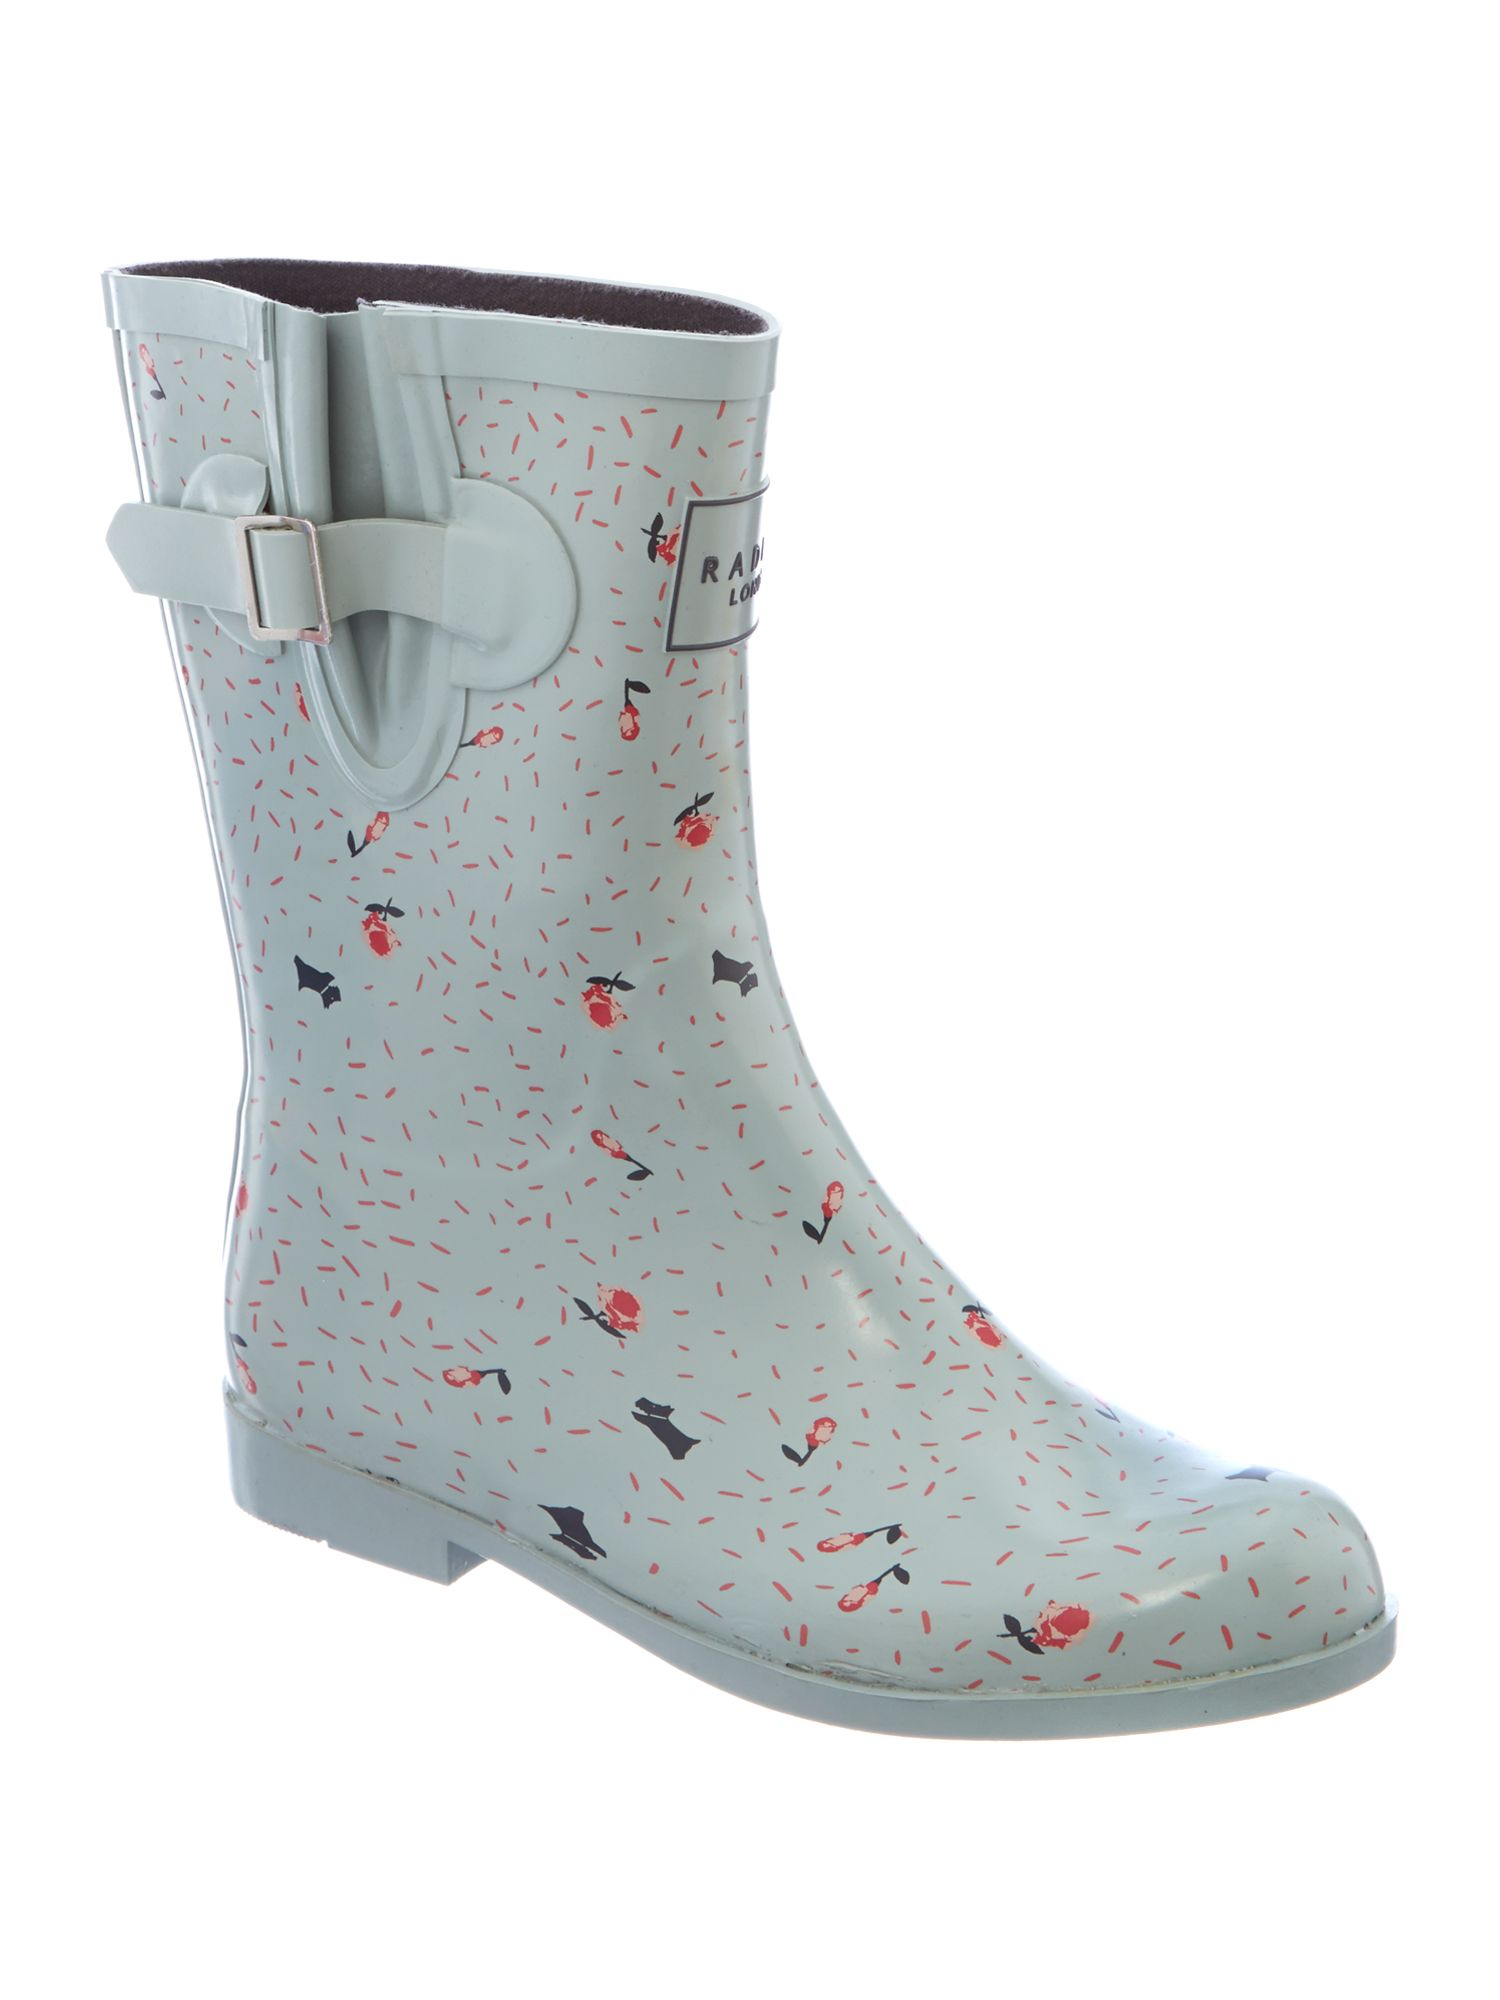 Emerson short wellington boots